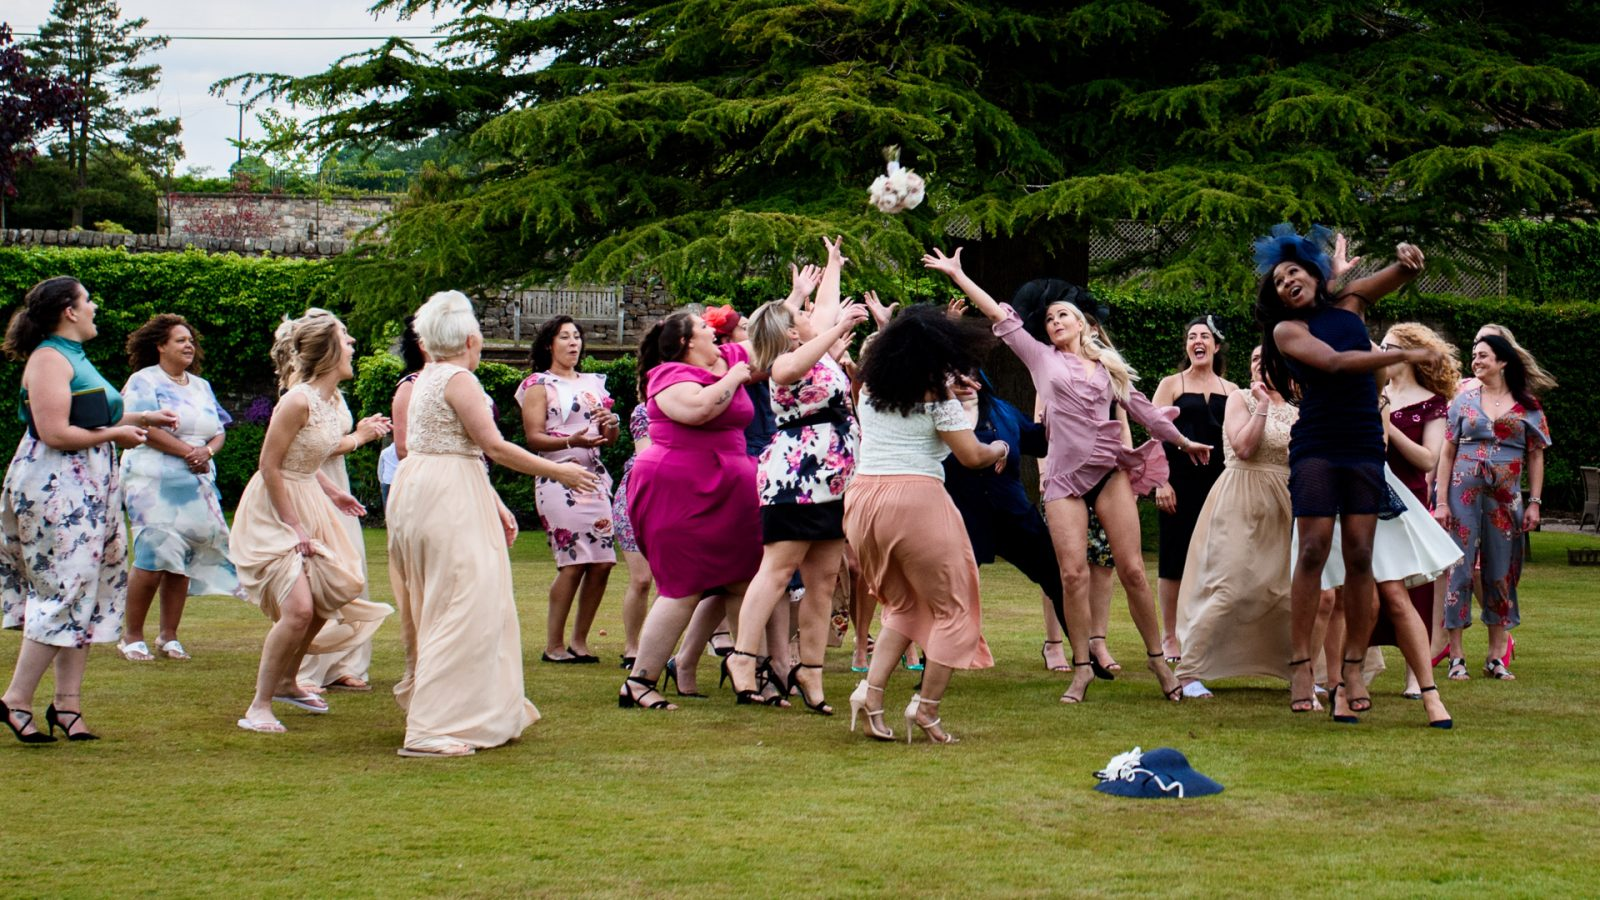 best-wedding-photos-2017-kimberley-and-joseph-bride-and-bridesmaids-catch-the-bouquet